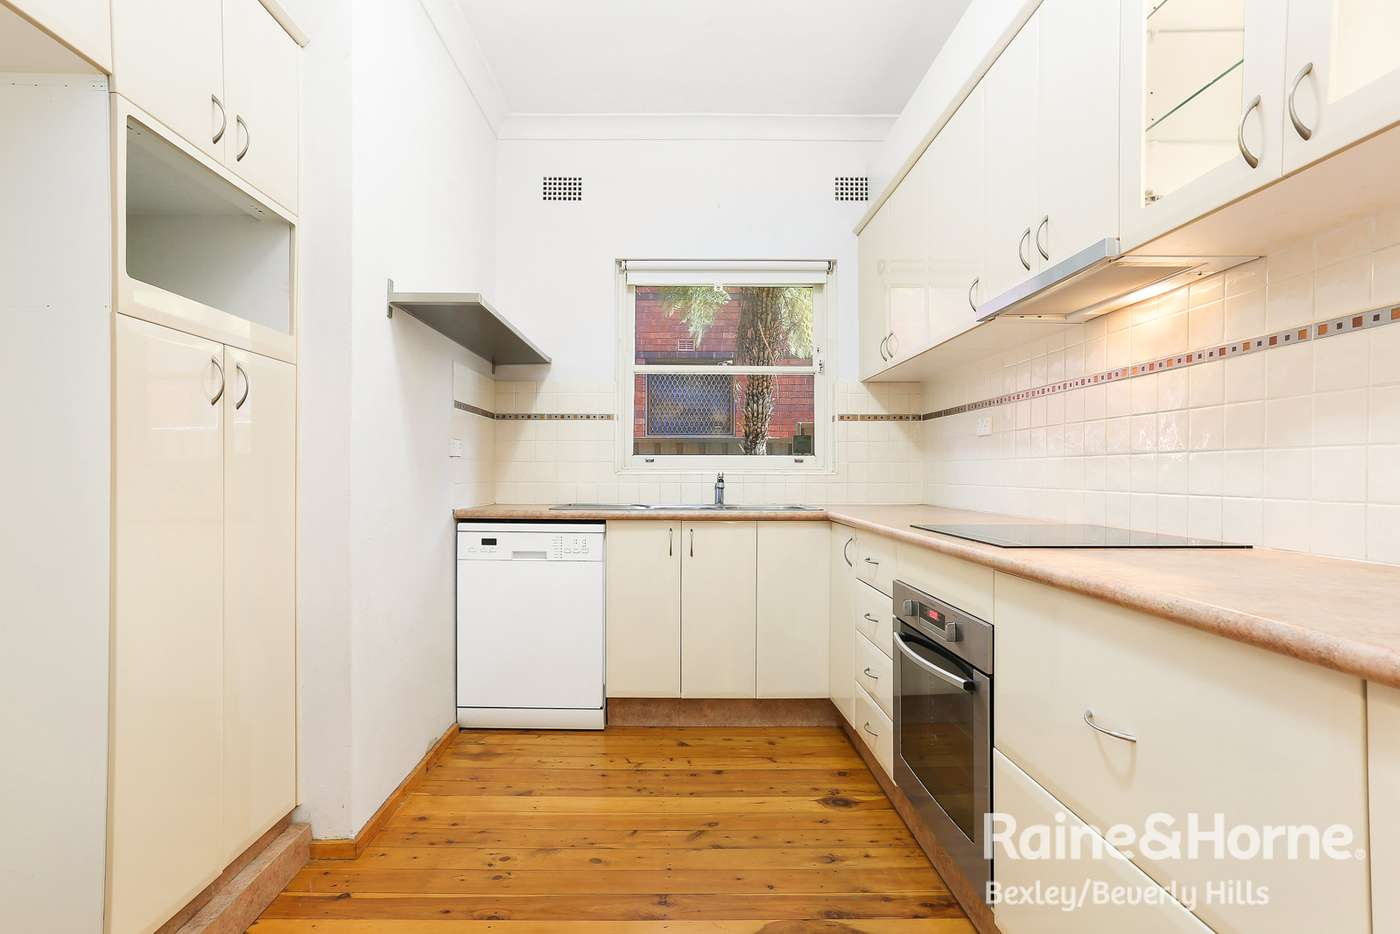 Main view of Homely apartment listing, 4/12 Monomeeth Street, Bexley NSW 2207